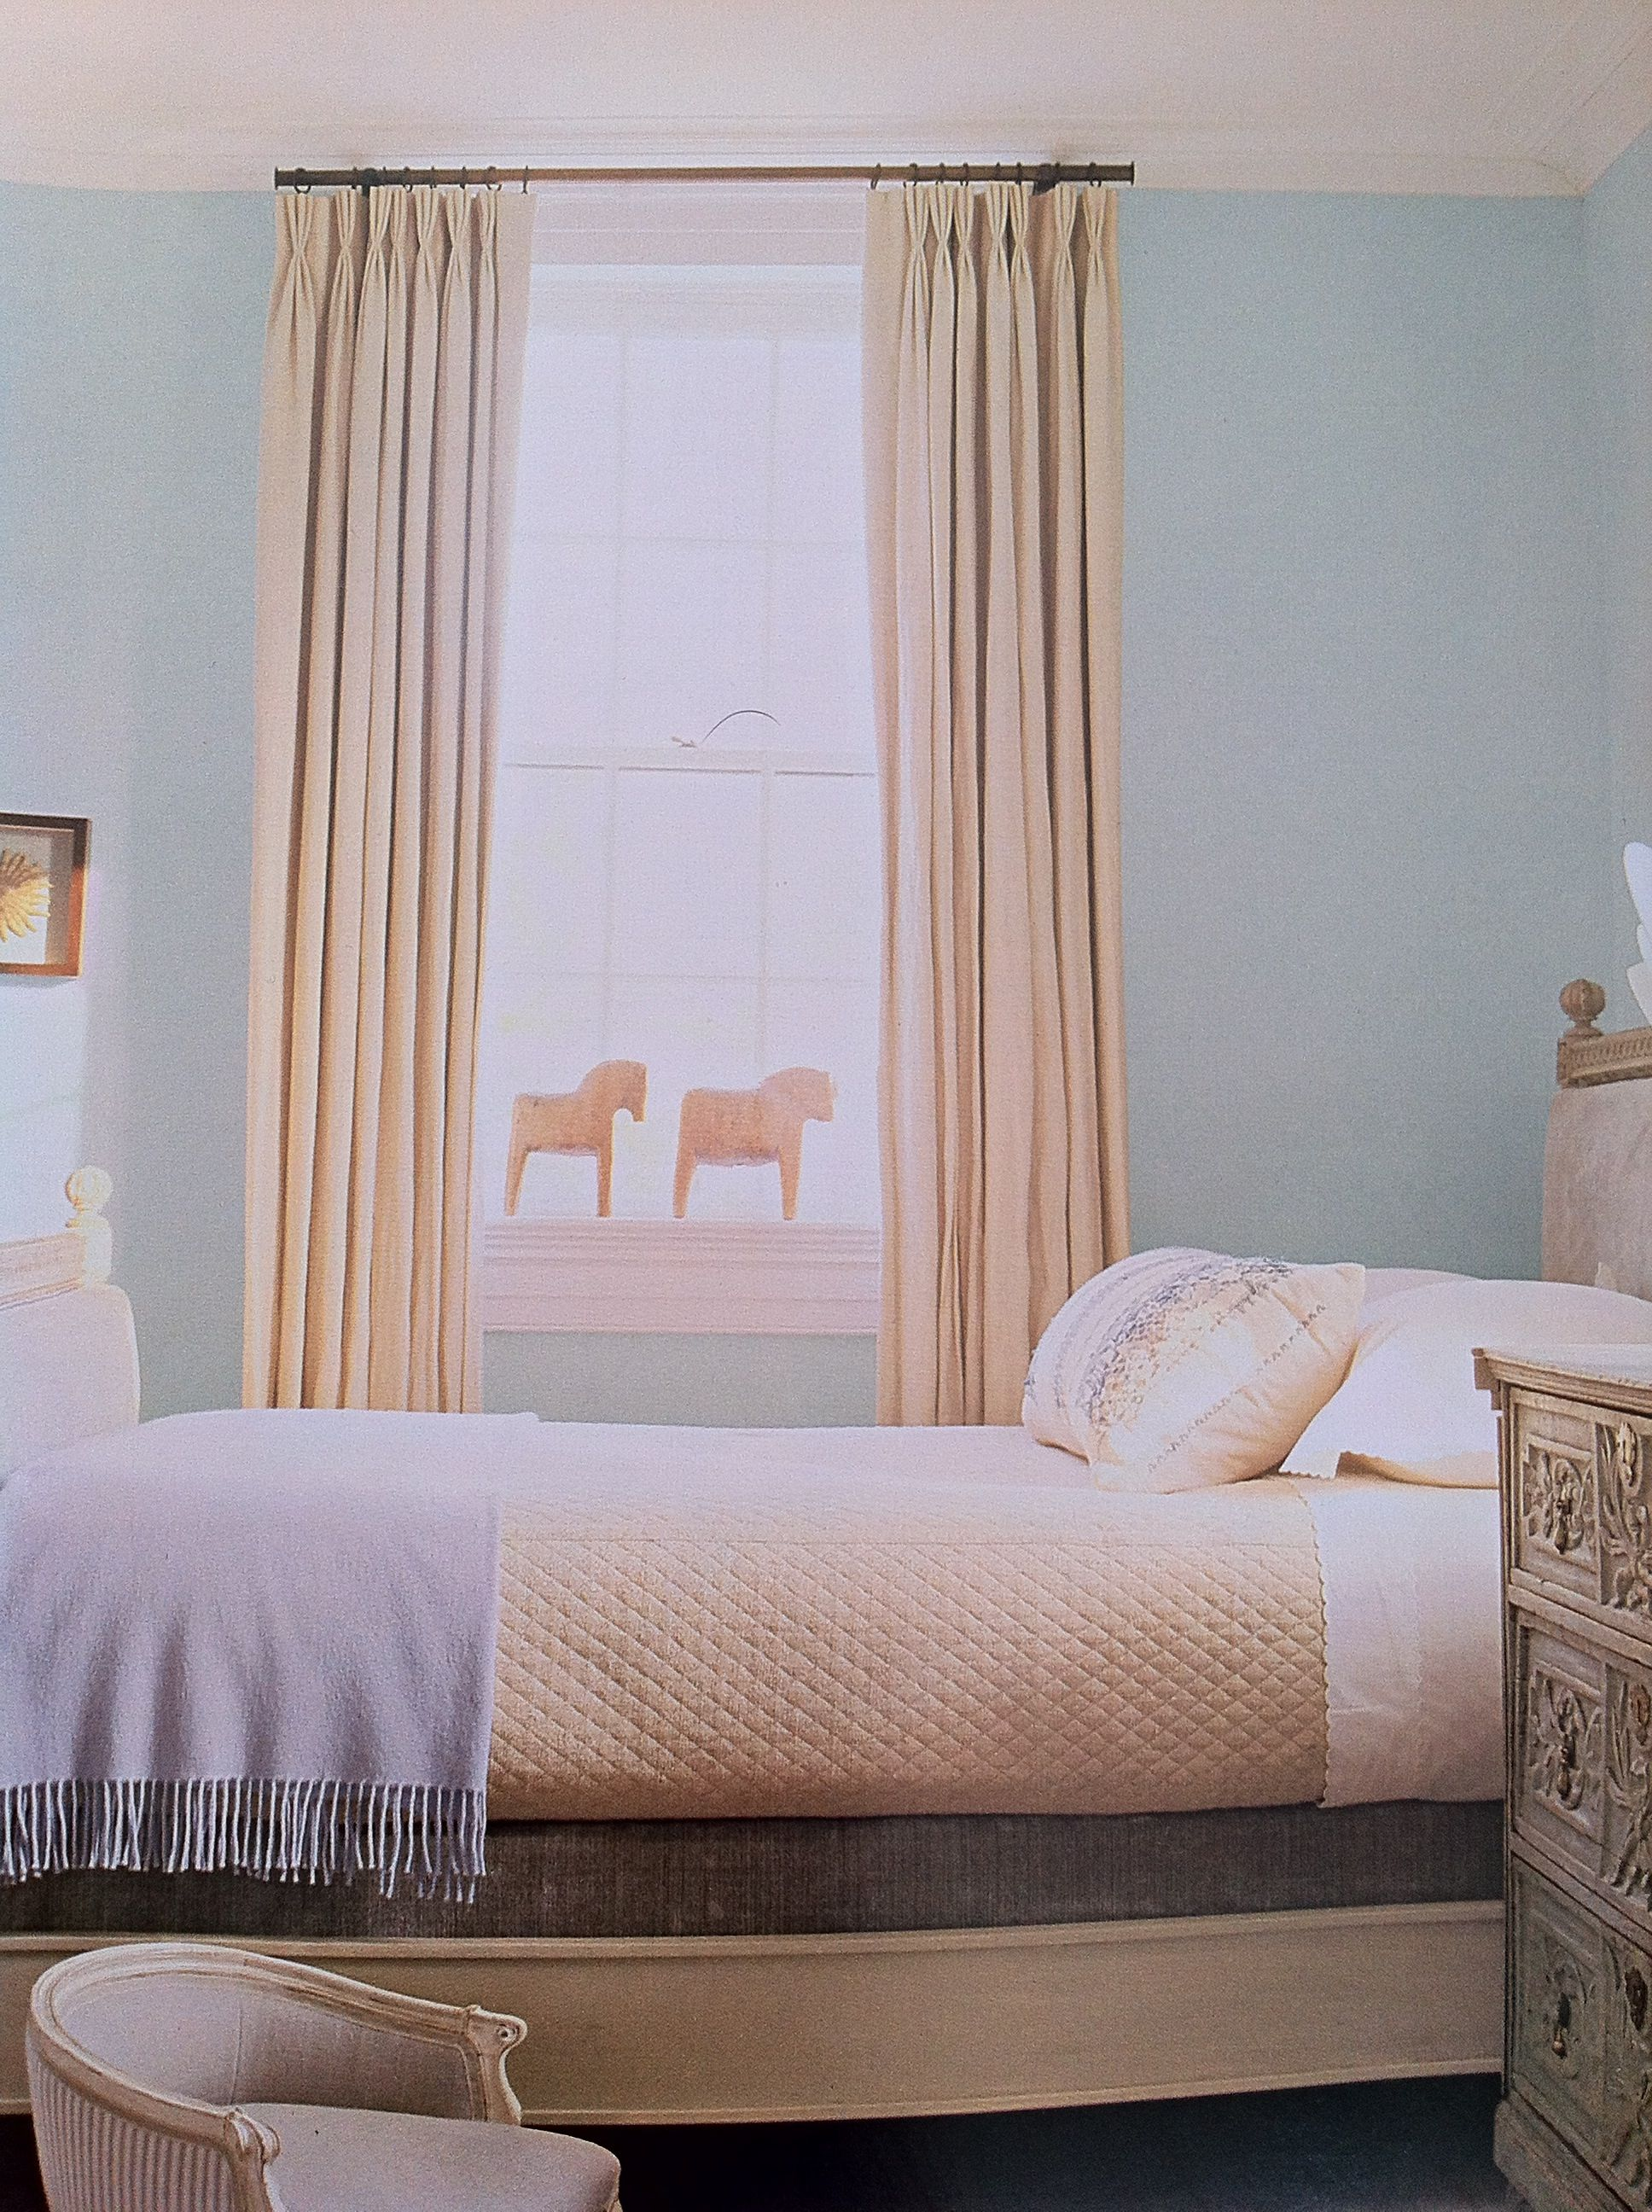 Blue Walls And Beige Curtains